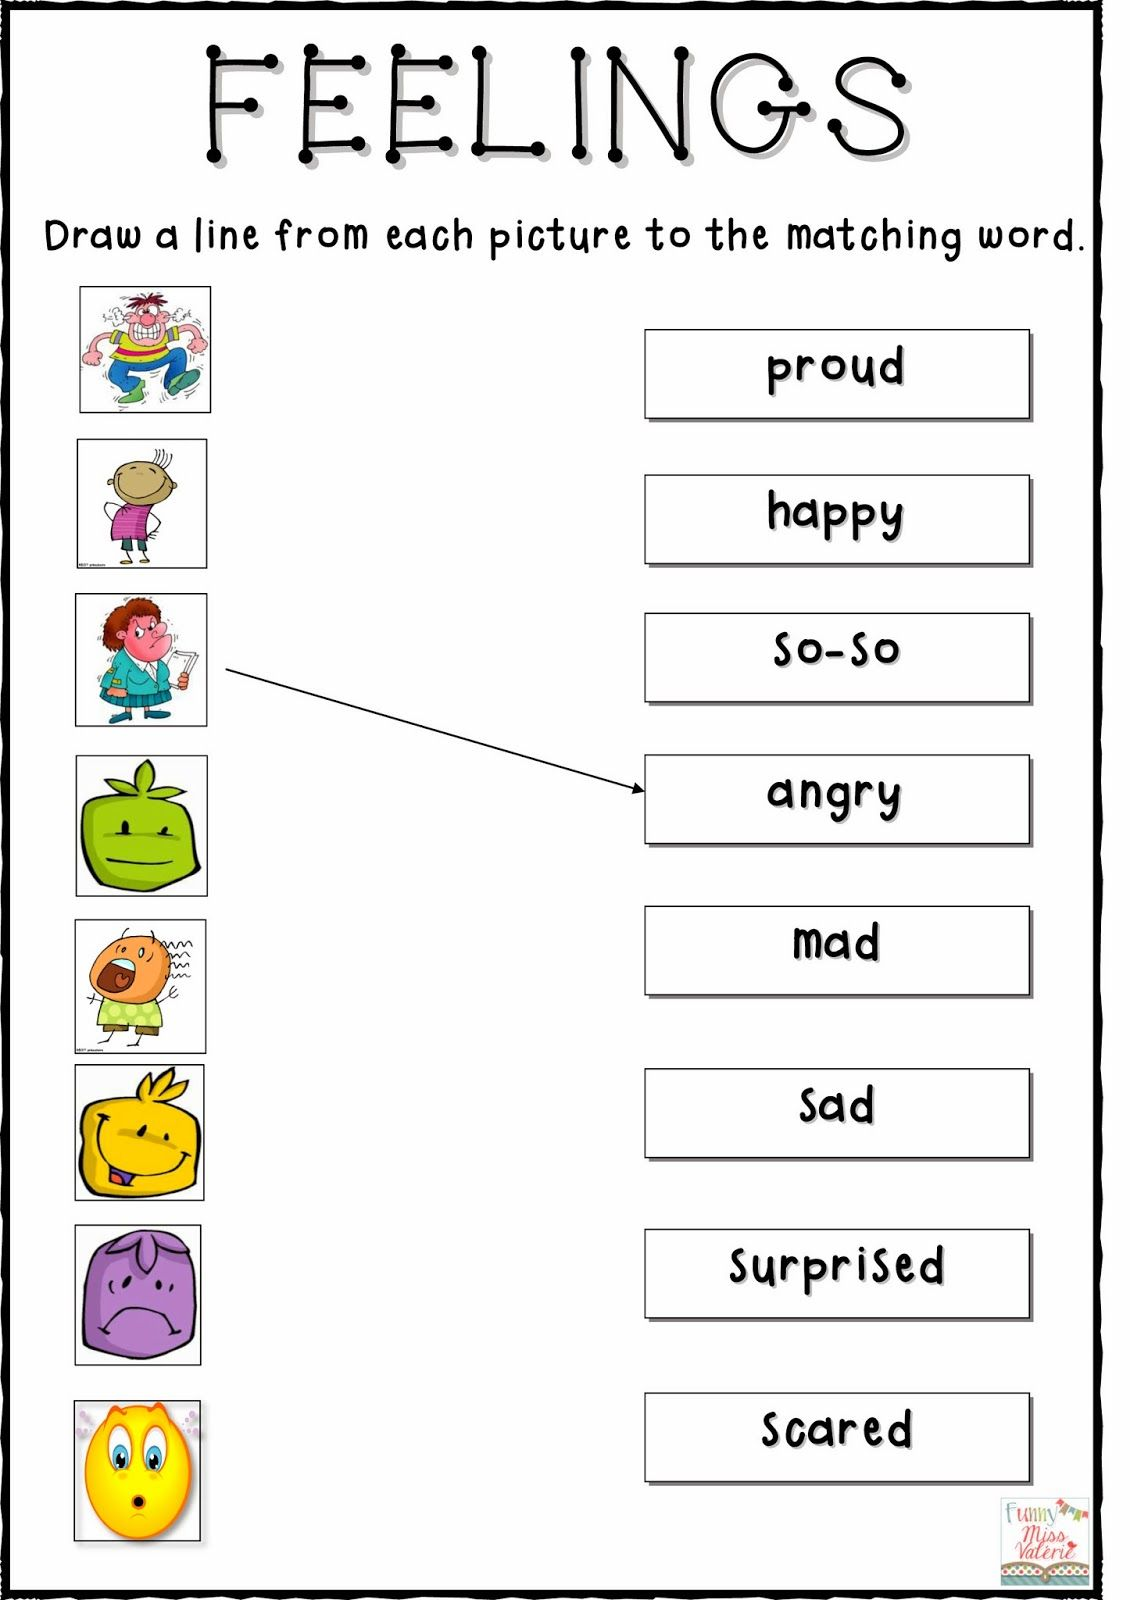 Feelings Matching Worksheet